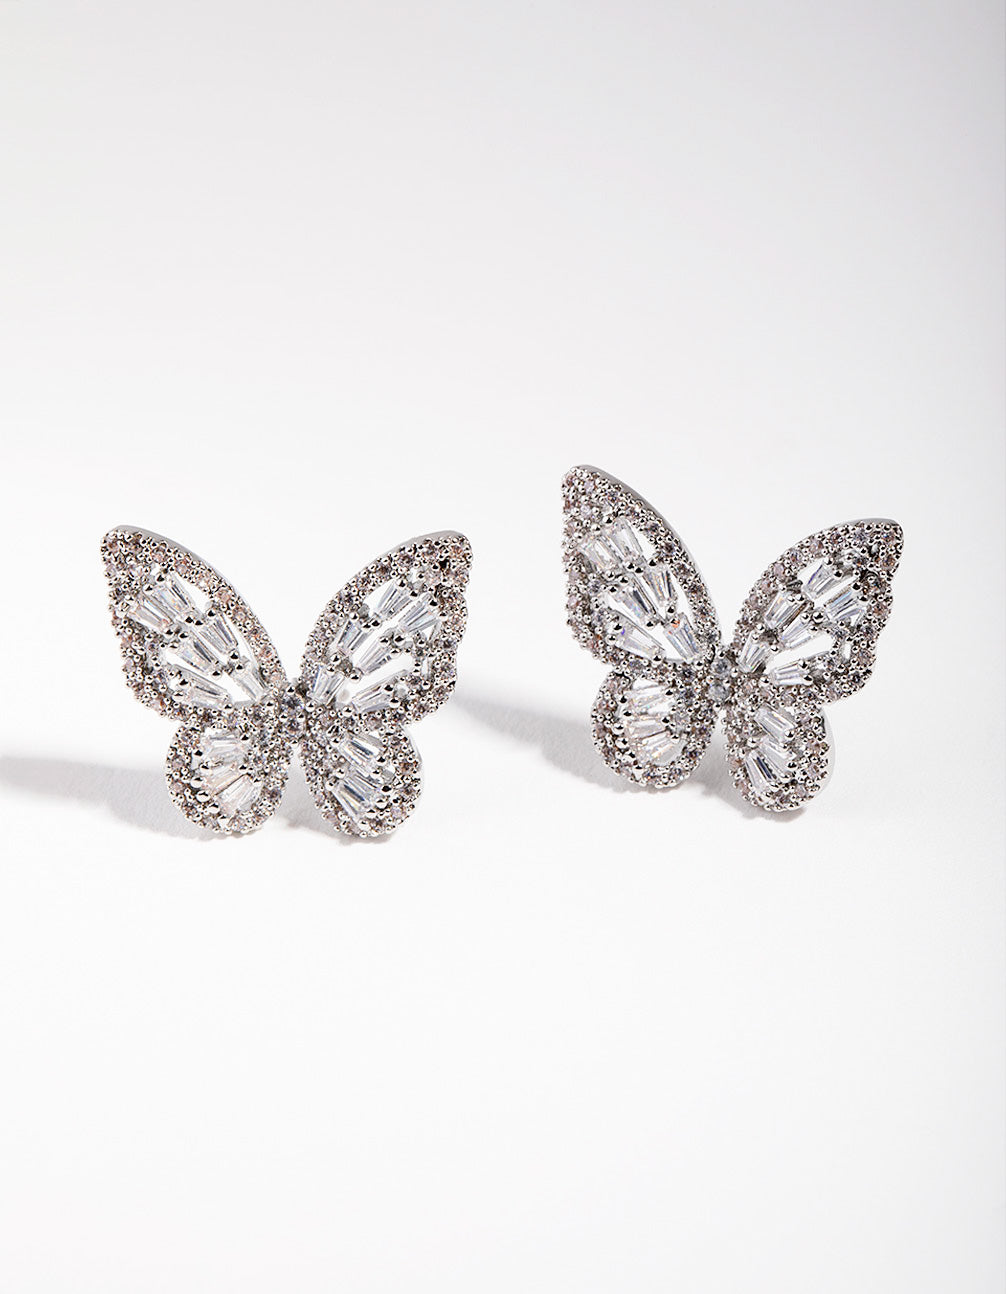 Large Rhodium Diamond Simulant Butterfly Earrings